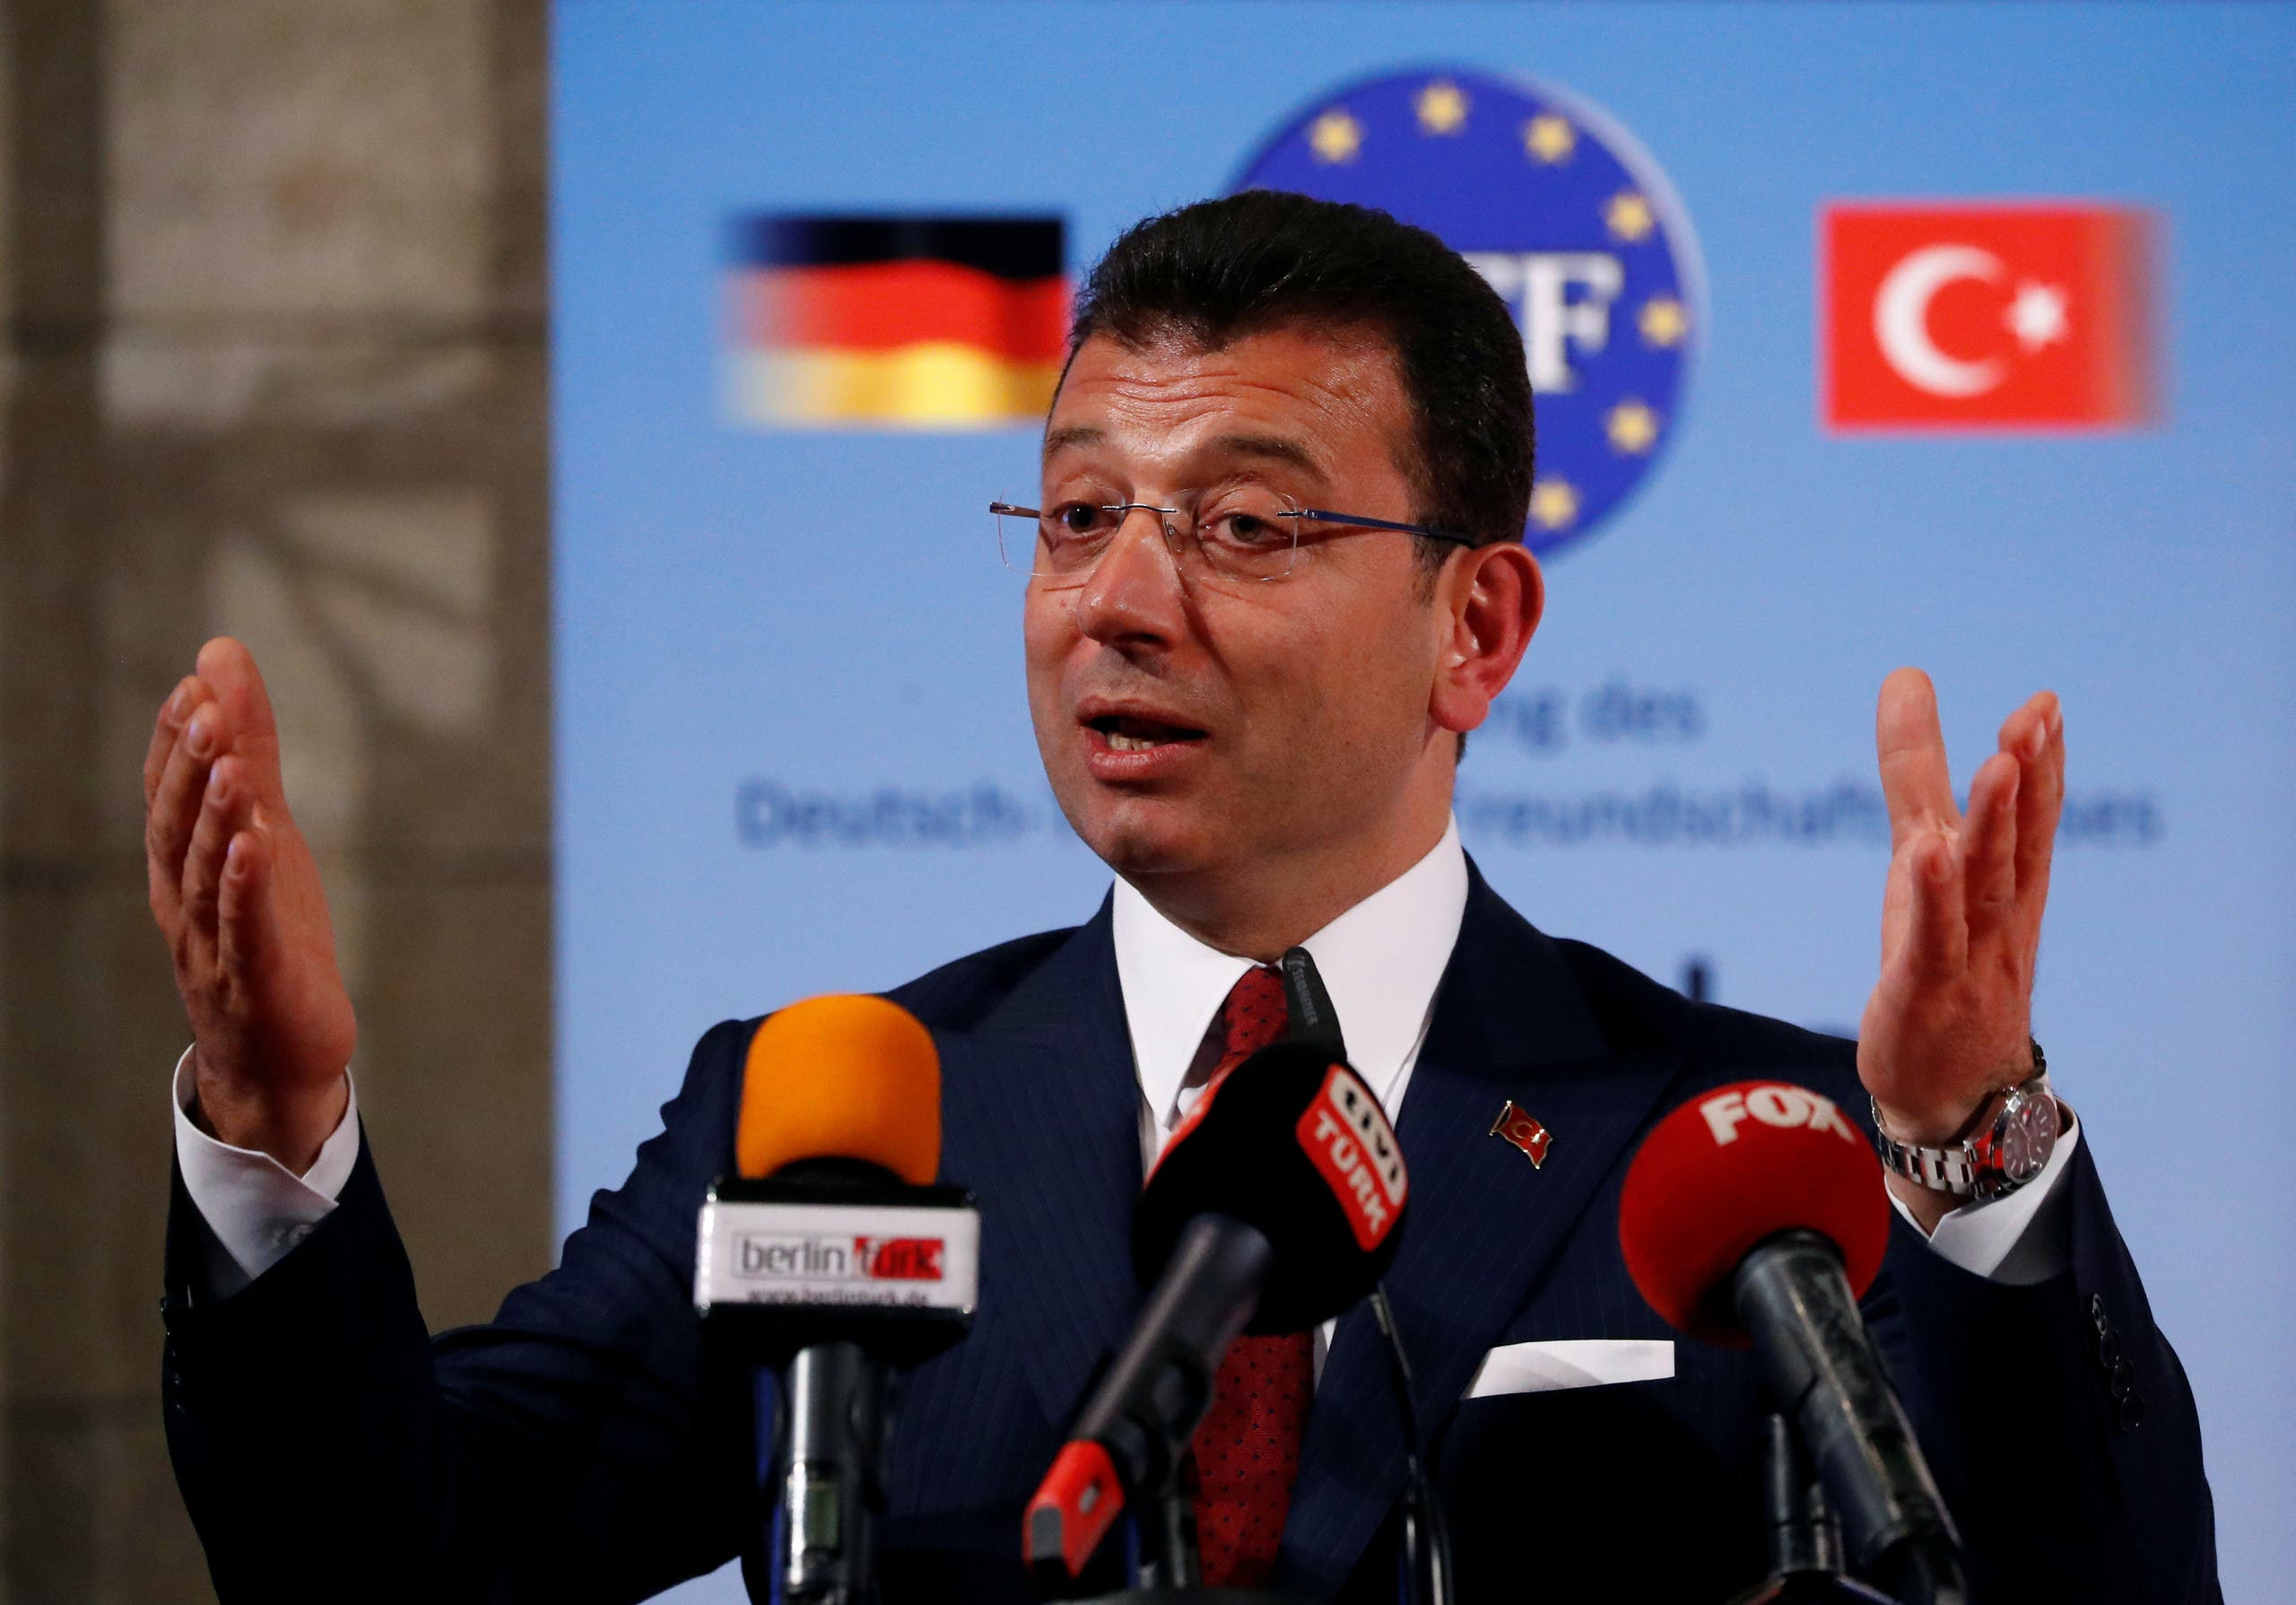 A file photo shows Istanbul Mayor Ekrem Imamoglu speaks after being awarded with the German-Turkish Friendship Award 'Kybele 2019' in Berlin, Germany, November 8, 2019. (Reuters)